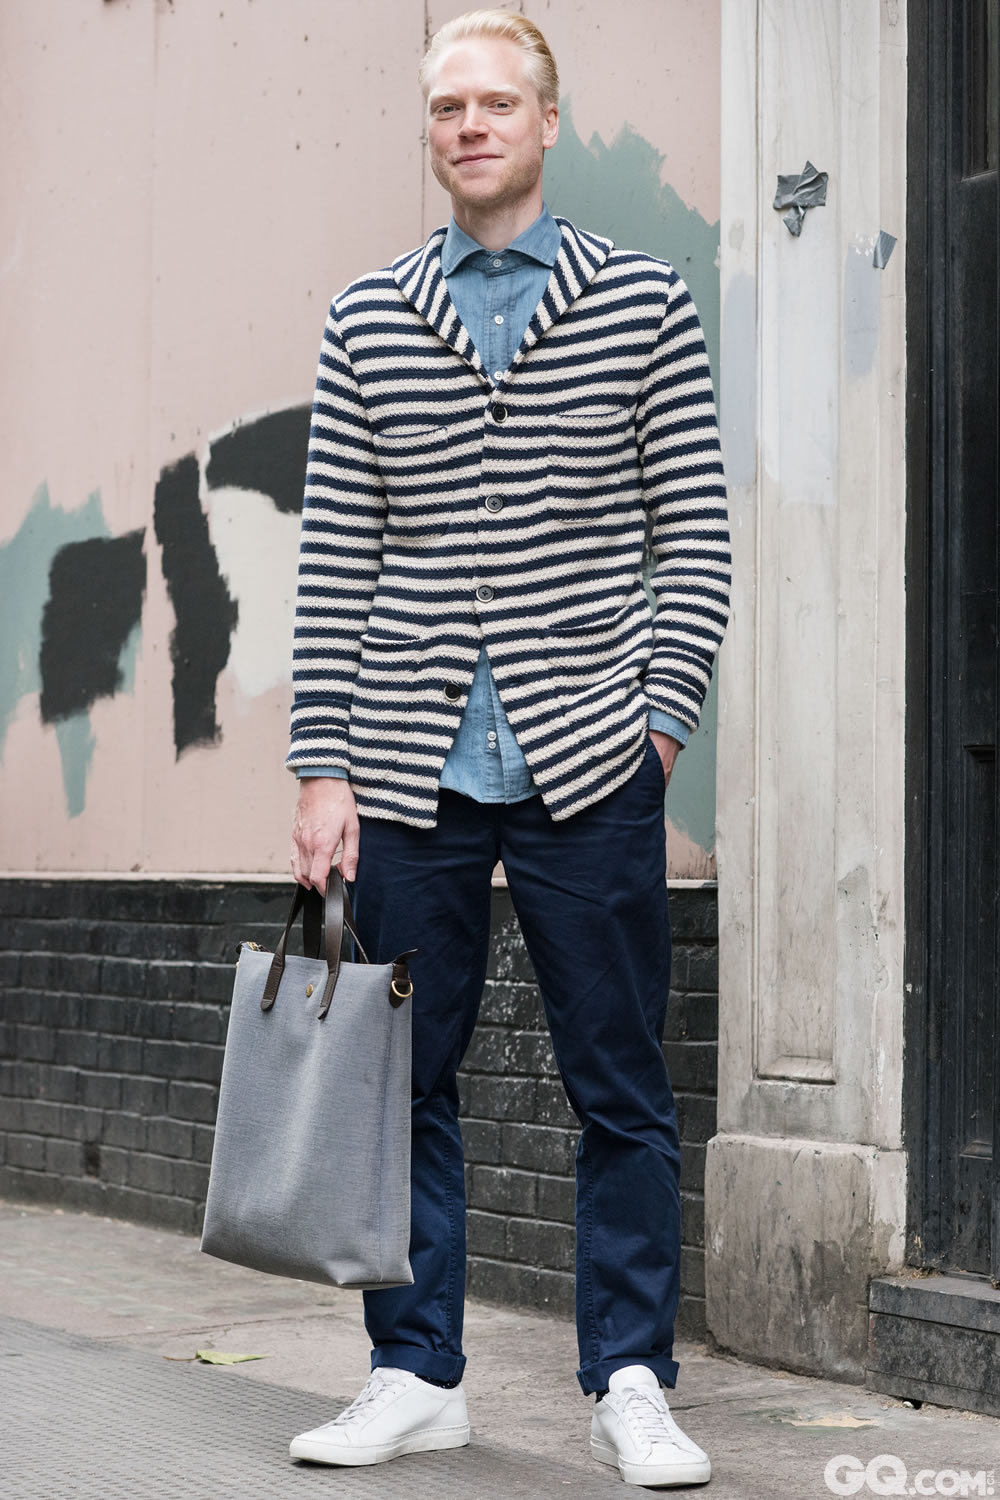 Sam Jacket: Borino T-shirt: Drakes Trousers: Acne Shoes:	Common Projects  Bag: Mismo   Inspiration: Today was a mix of different shades of blues (今天就是让深浅不一的蓝色混搭起来)